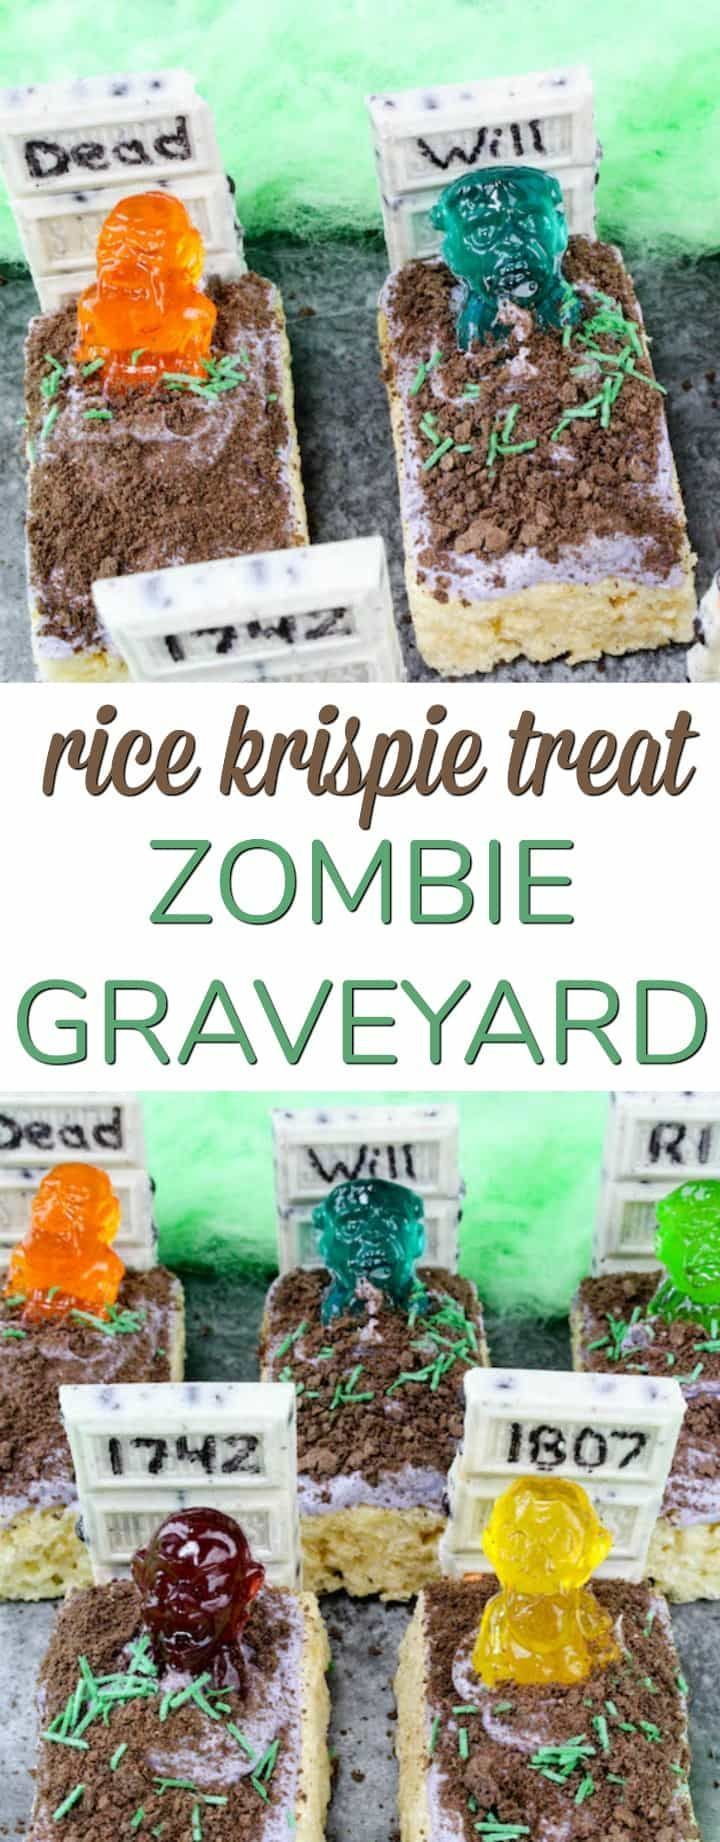 Easy Halloween Dessert - Rice Krispie Treats Zombie Graveyard! Perfect for a classroom party project or treat!